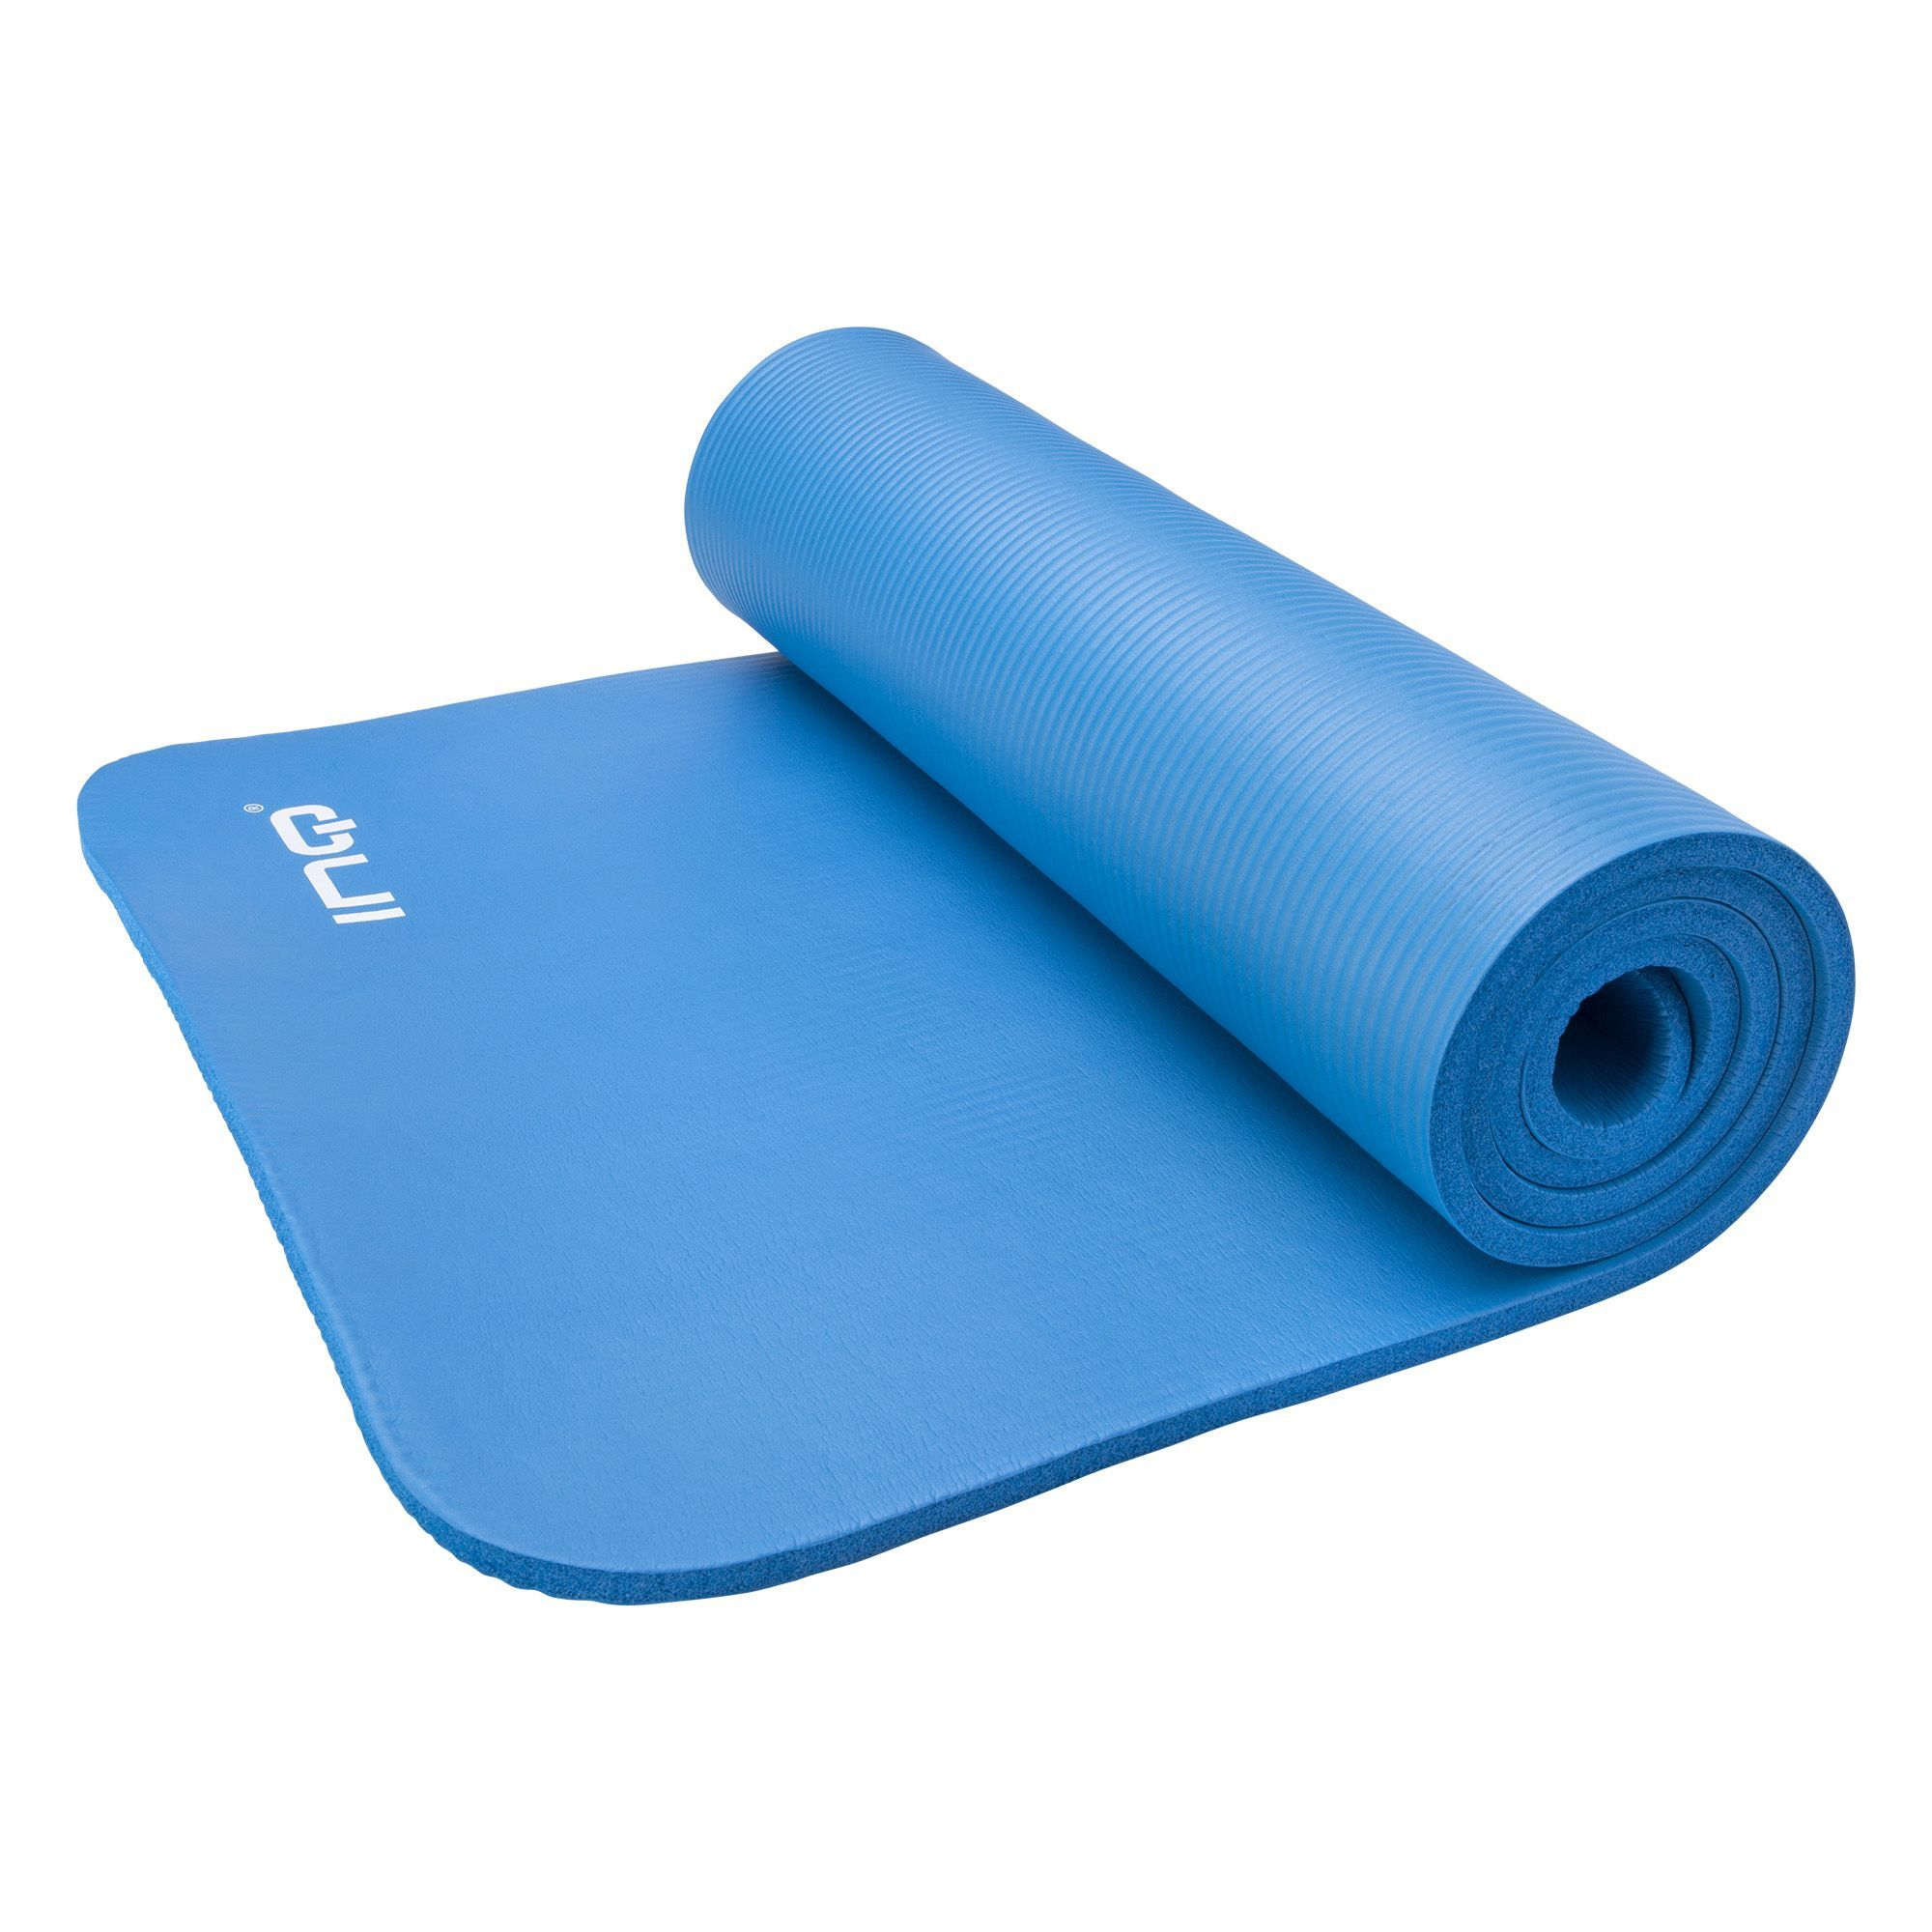 gymnastics s com choice x clublifeglobal bestchoices mats mat diy rakuten incline best